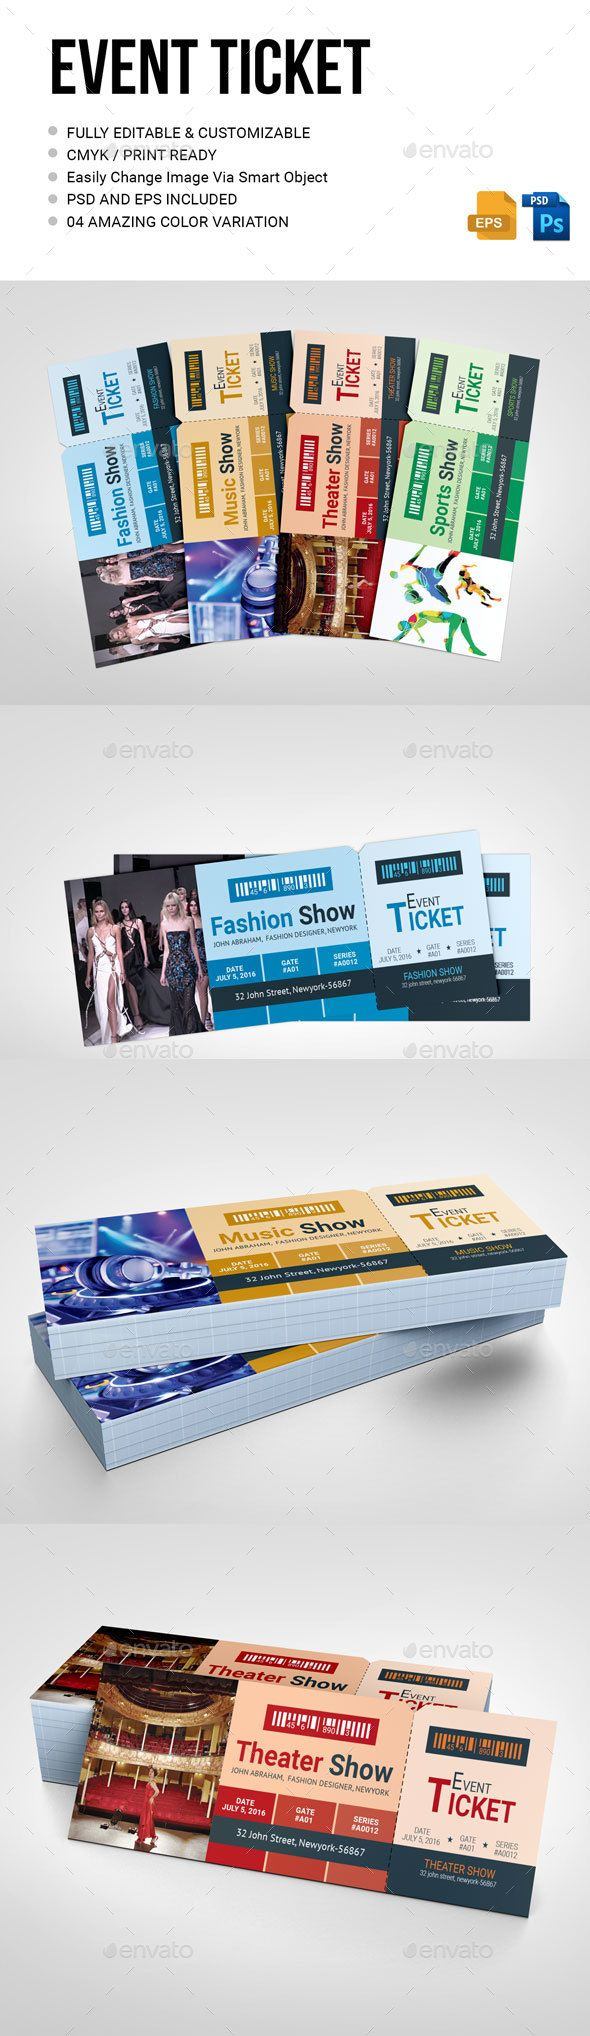 Event Ticket  PSD Template • Download ↓ https://graphicriver.net/item/event-ticket/16957010?ref=pxcr